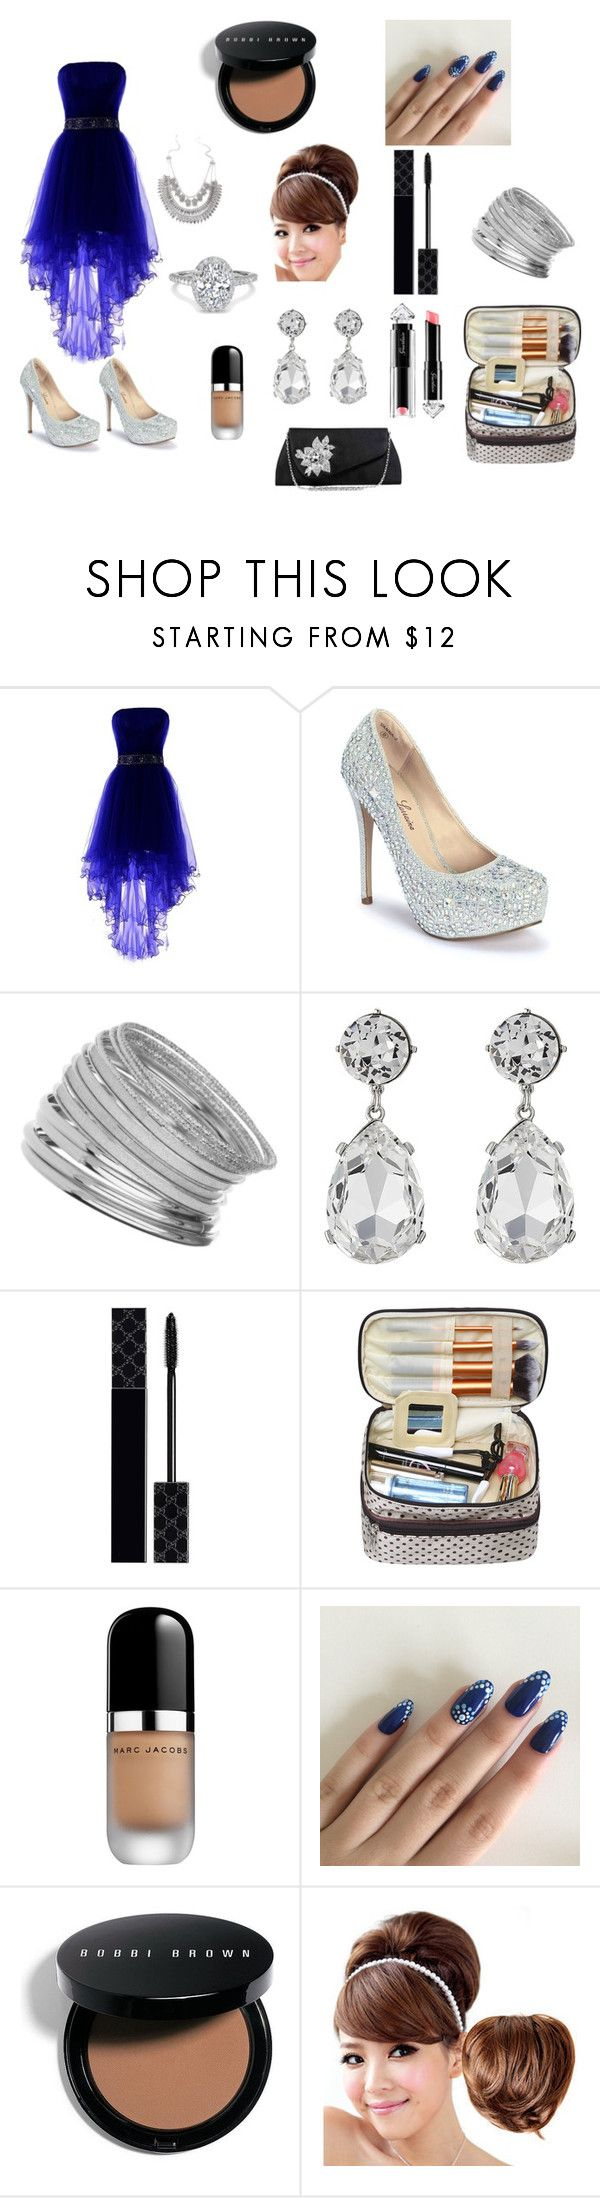 """Homecoming/Party dress"" by tkiyah-leech ❤ liked on Polyvore featuring beauty, Lauren Lorraine, Miss Selfridge, Kenneth Jay Lane, Gucci, La Petite Robe di Chiara Boni, Marc Jacobs, Bobbi Brown Cosmetics and Clair Beauty"